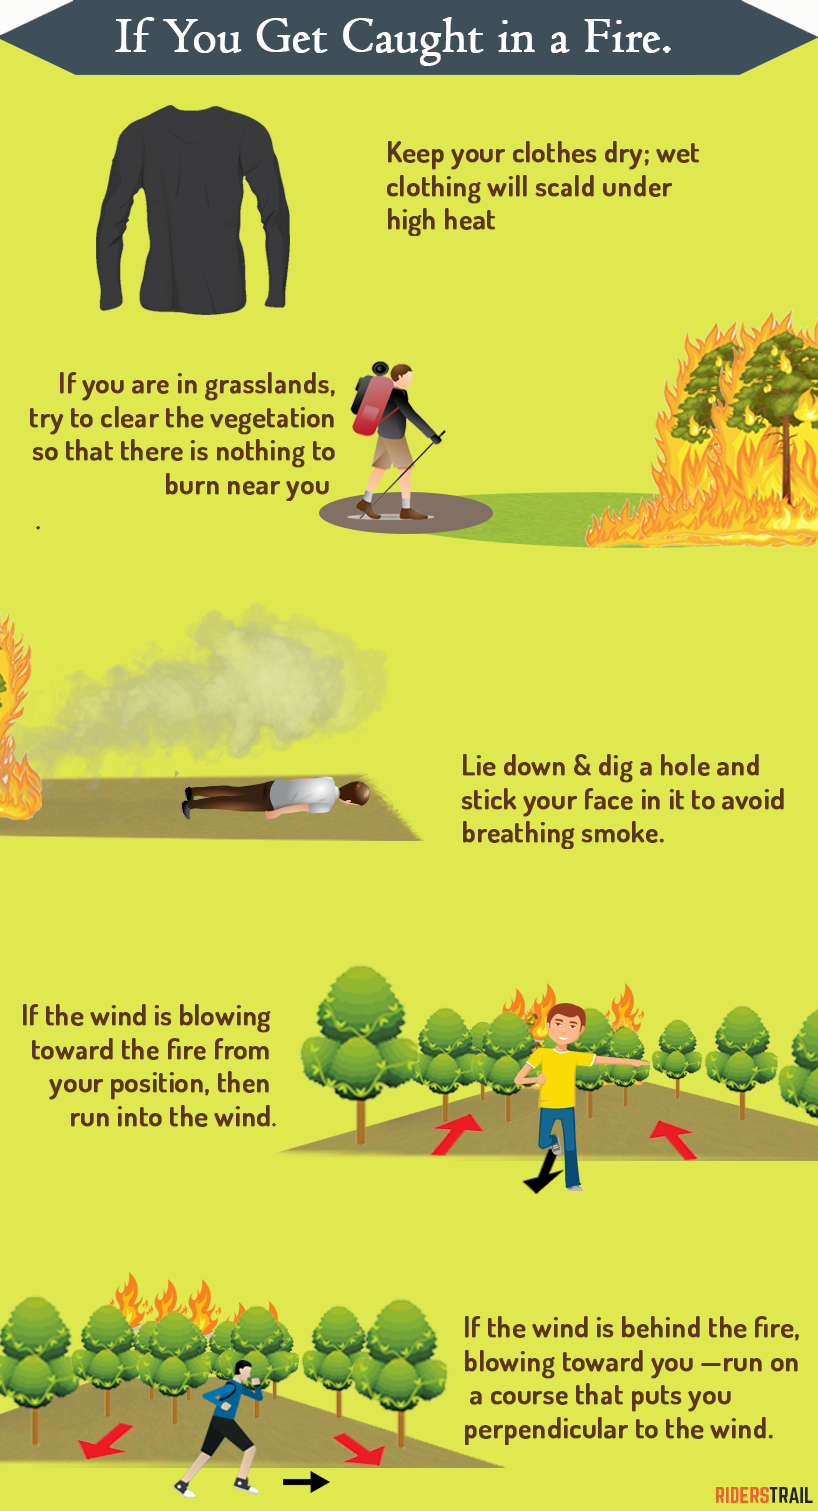 Tips to prepare for hiking